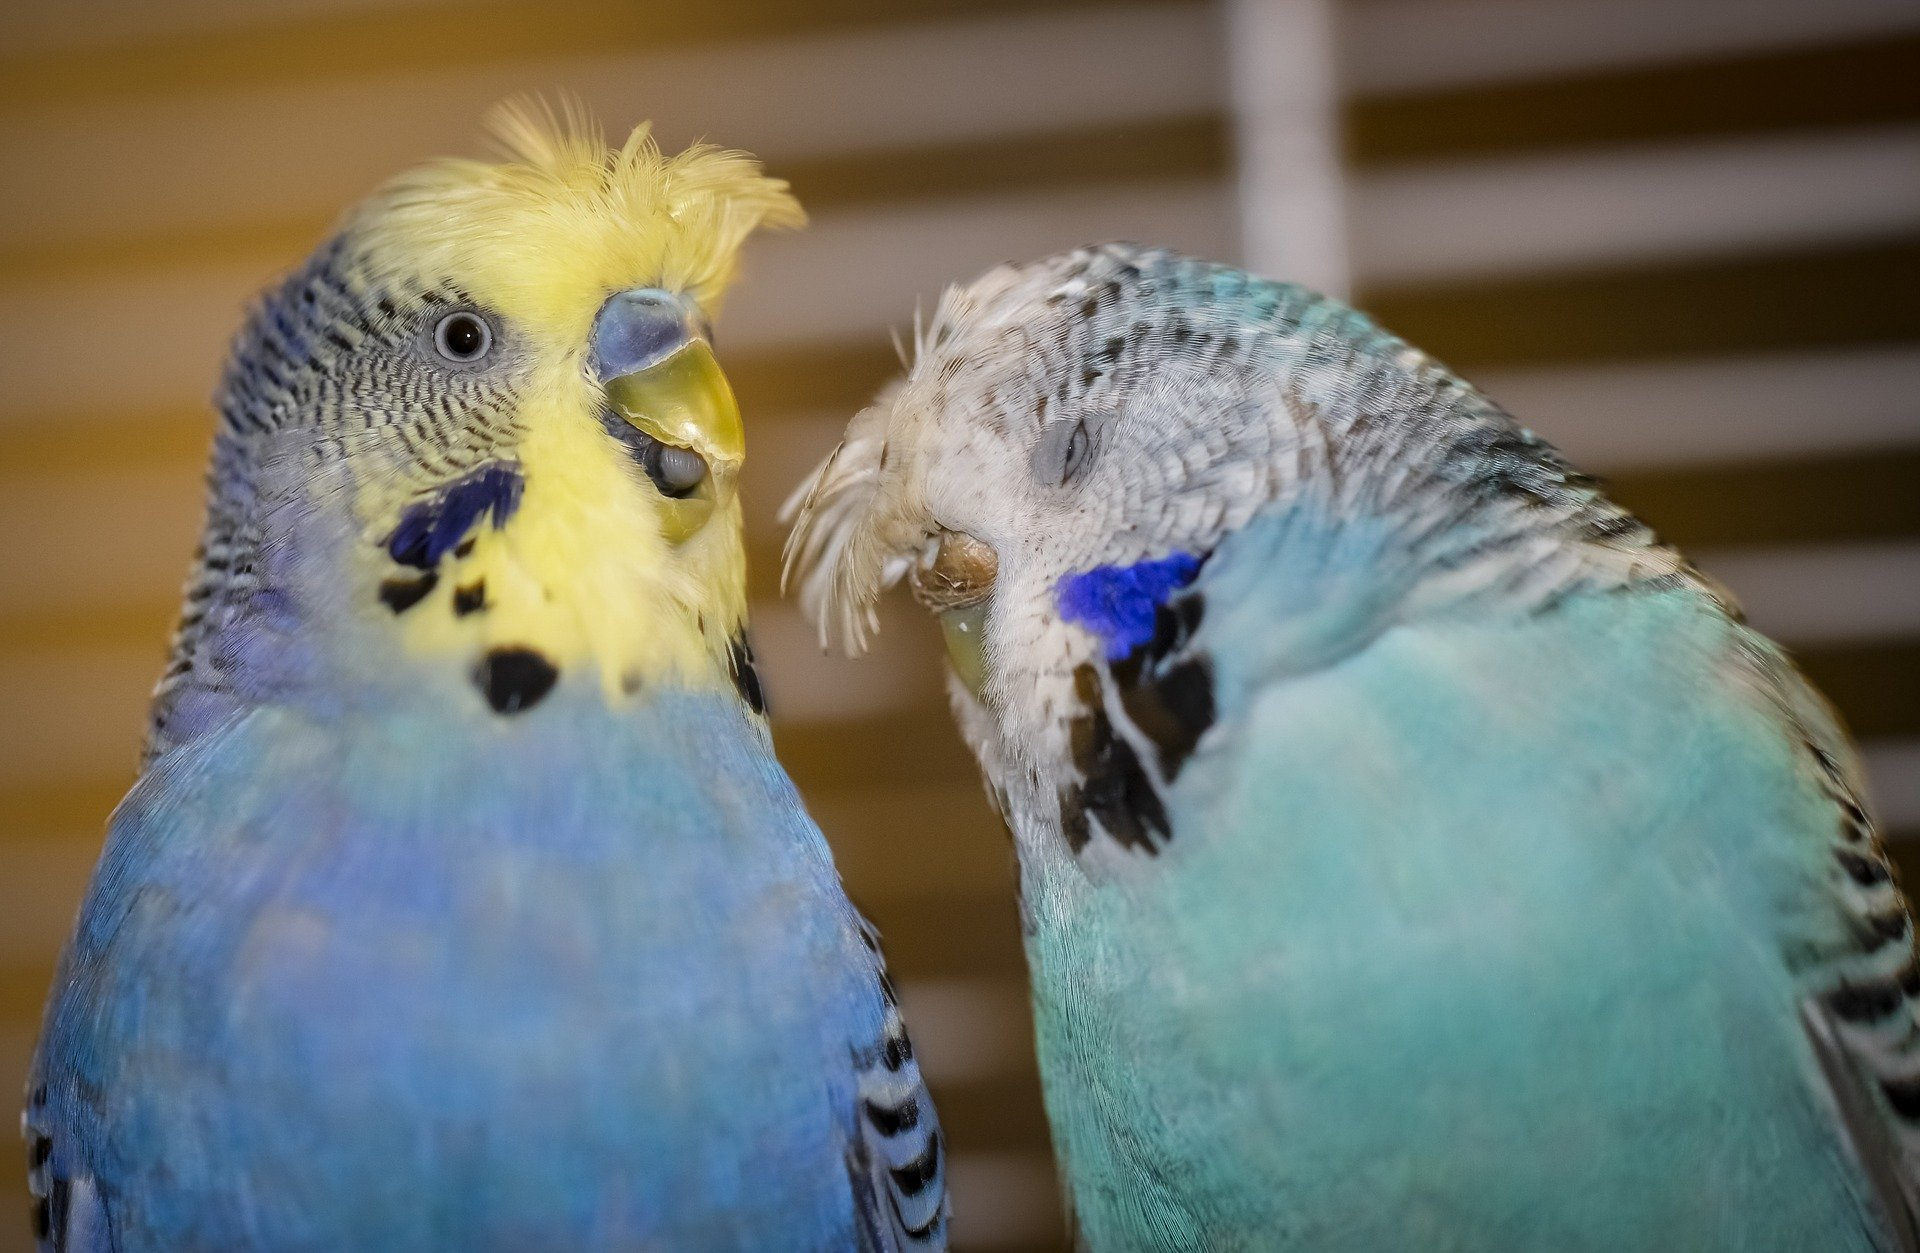 Two budgies animatedly talking. | Source: rose_anna/Pixabay